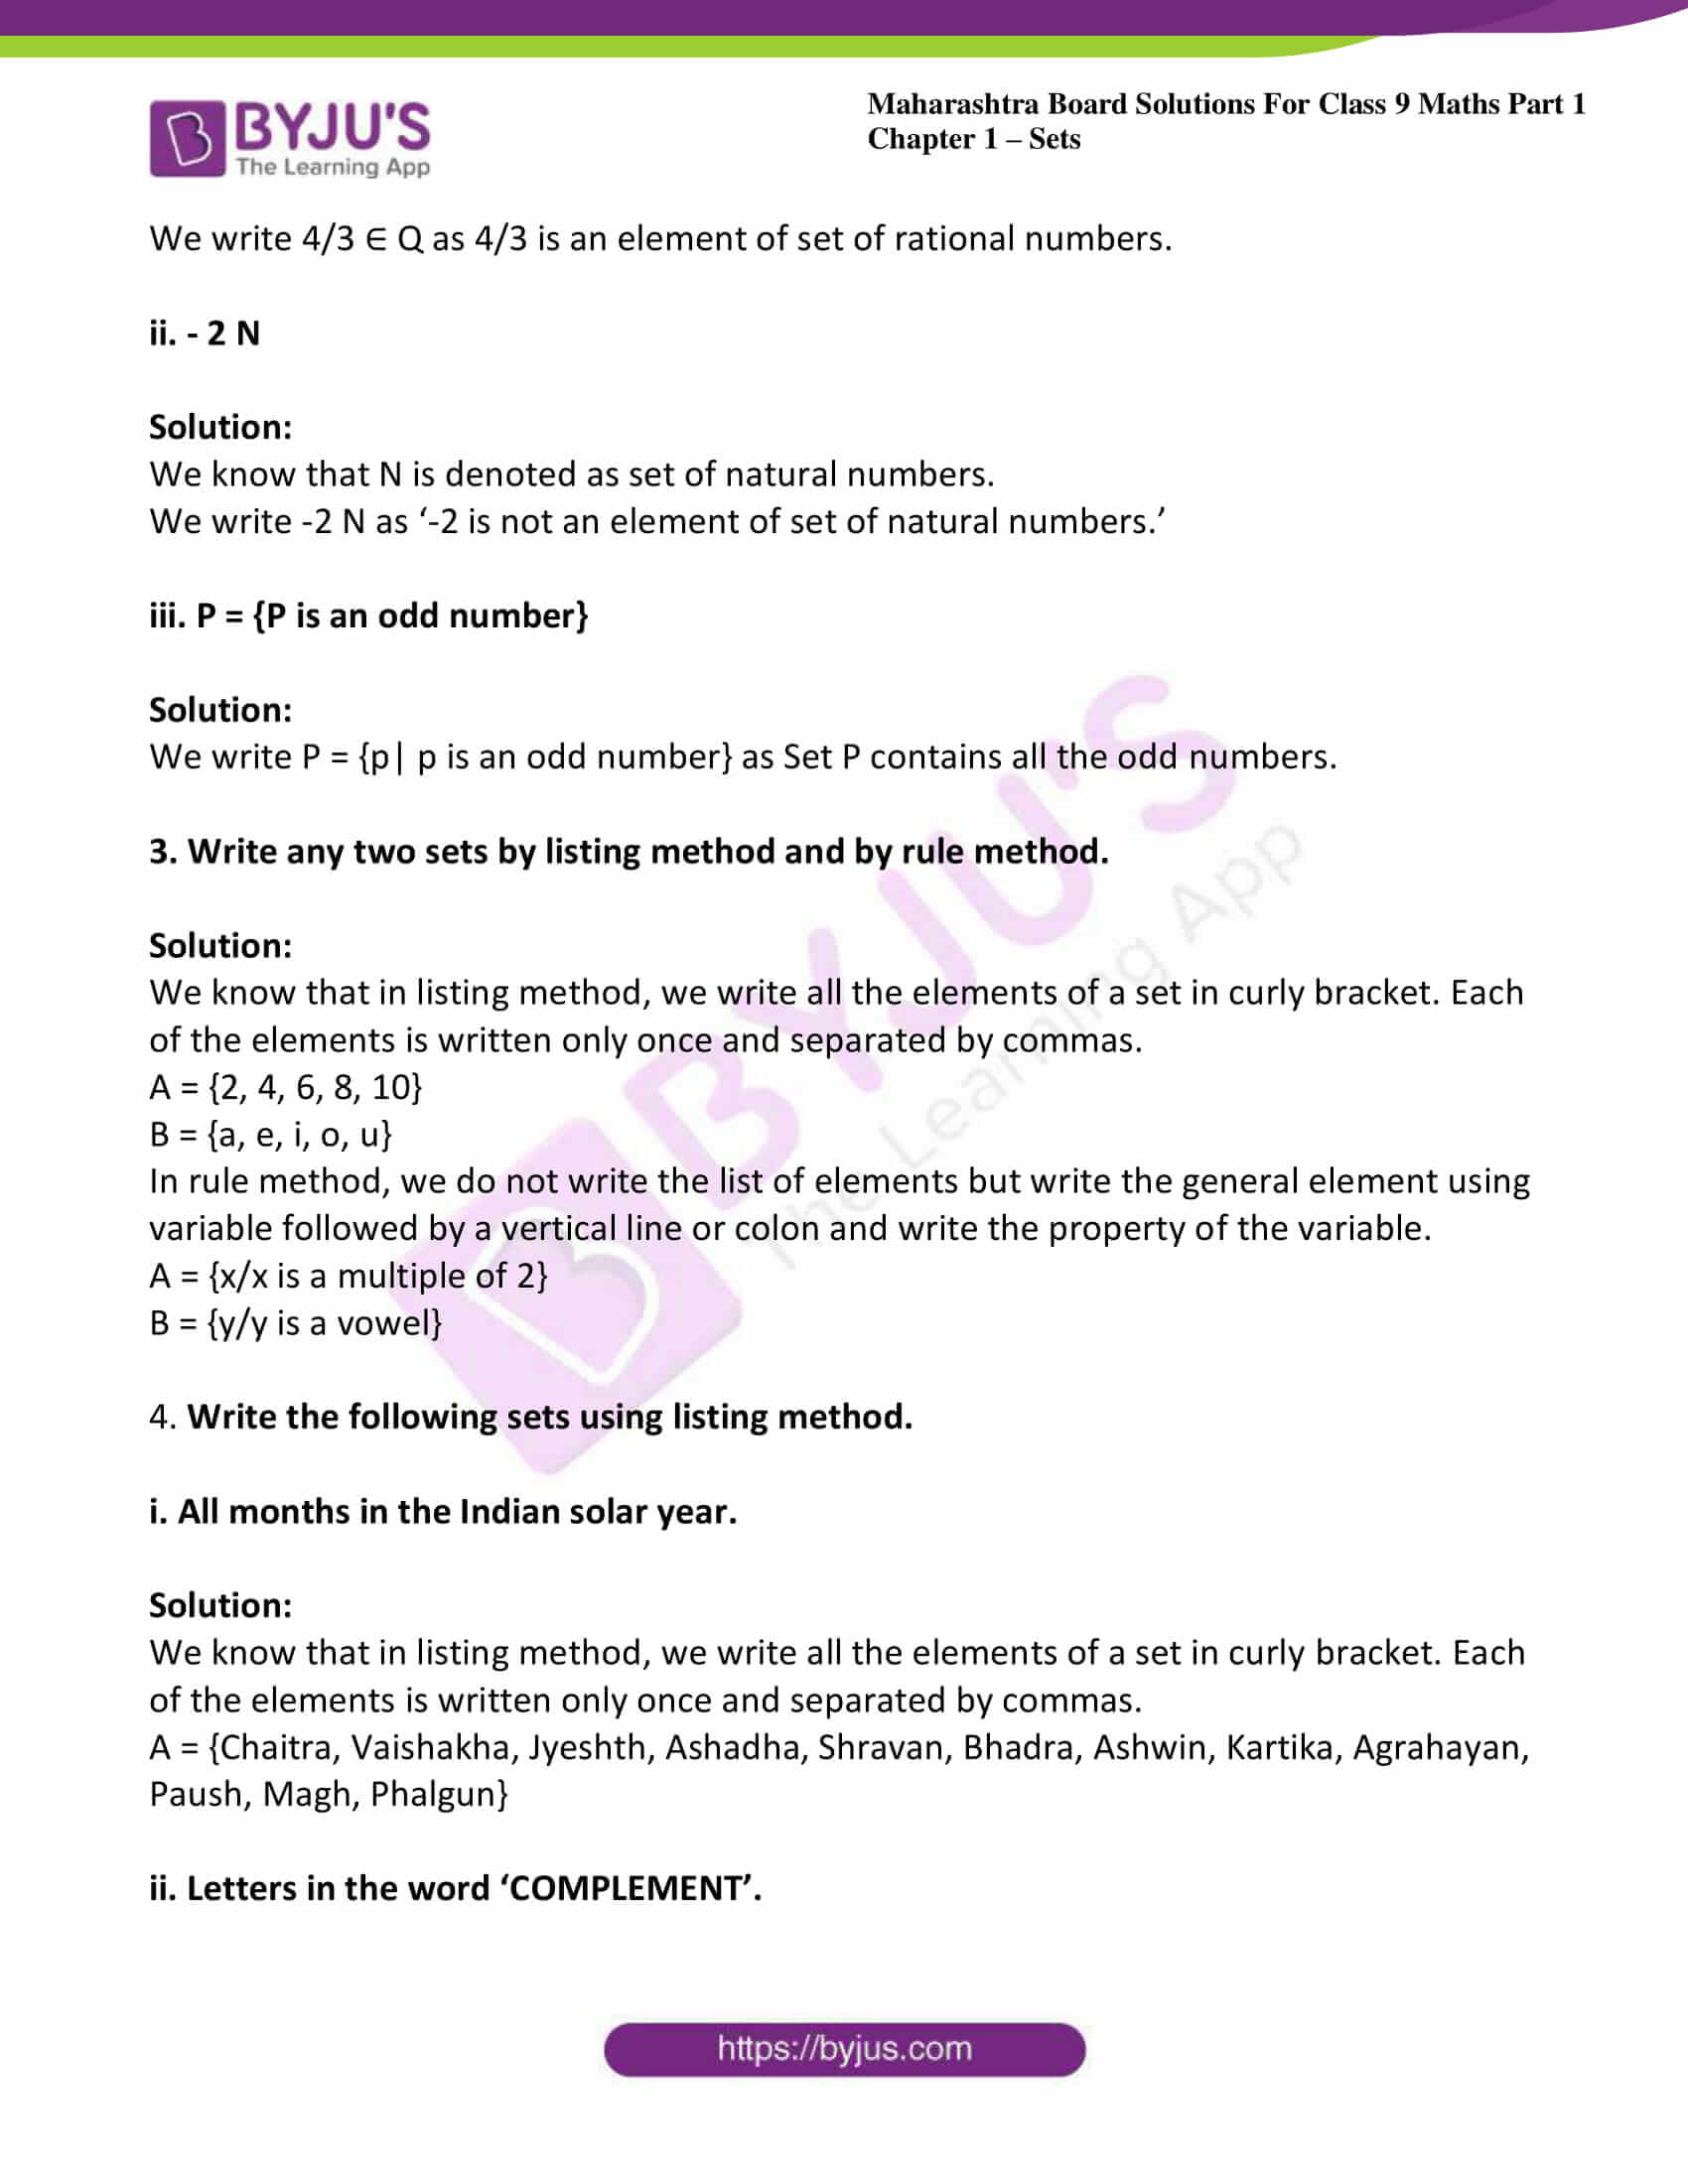 msbshse sol class 9 maths part 1 chapter 1 sets 02